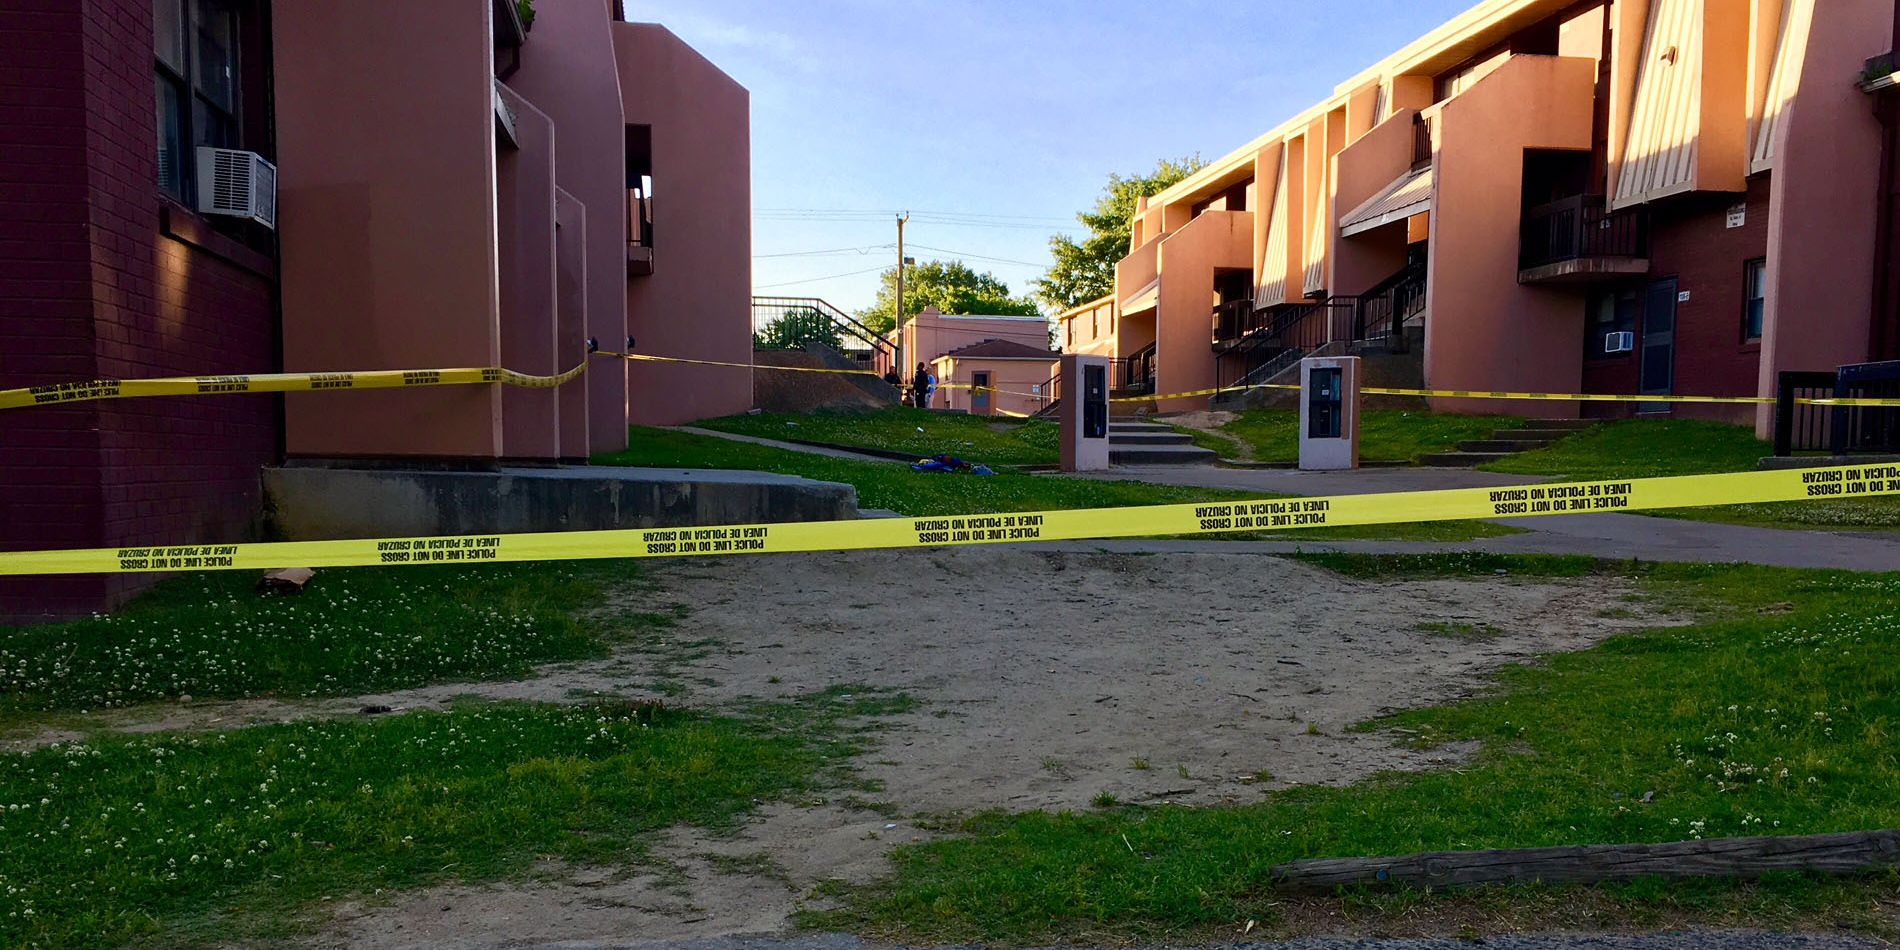 Man in critical condition following Richmond shooting